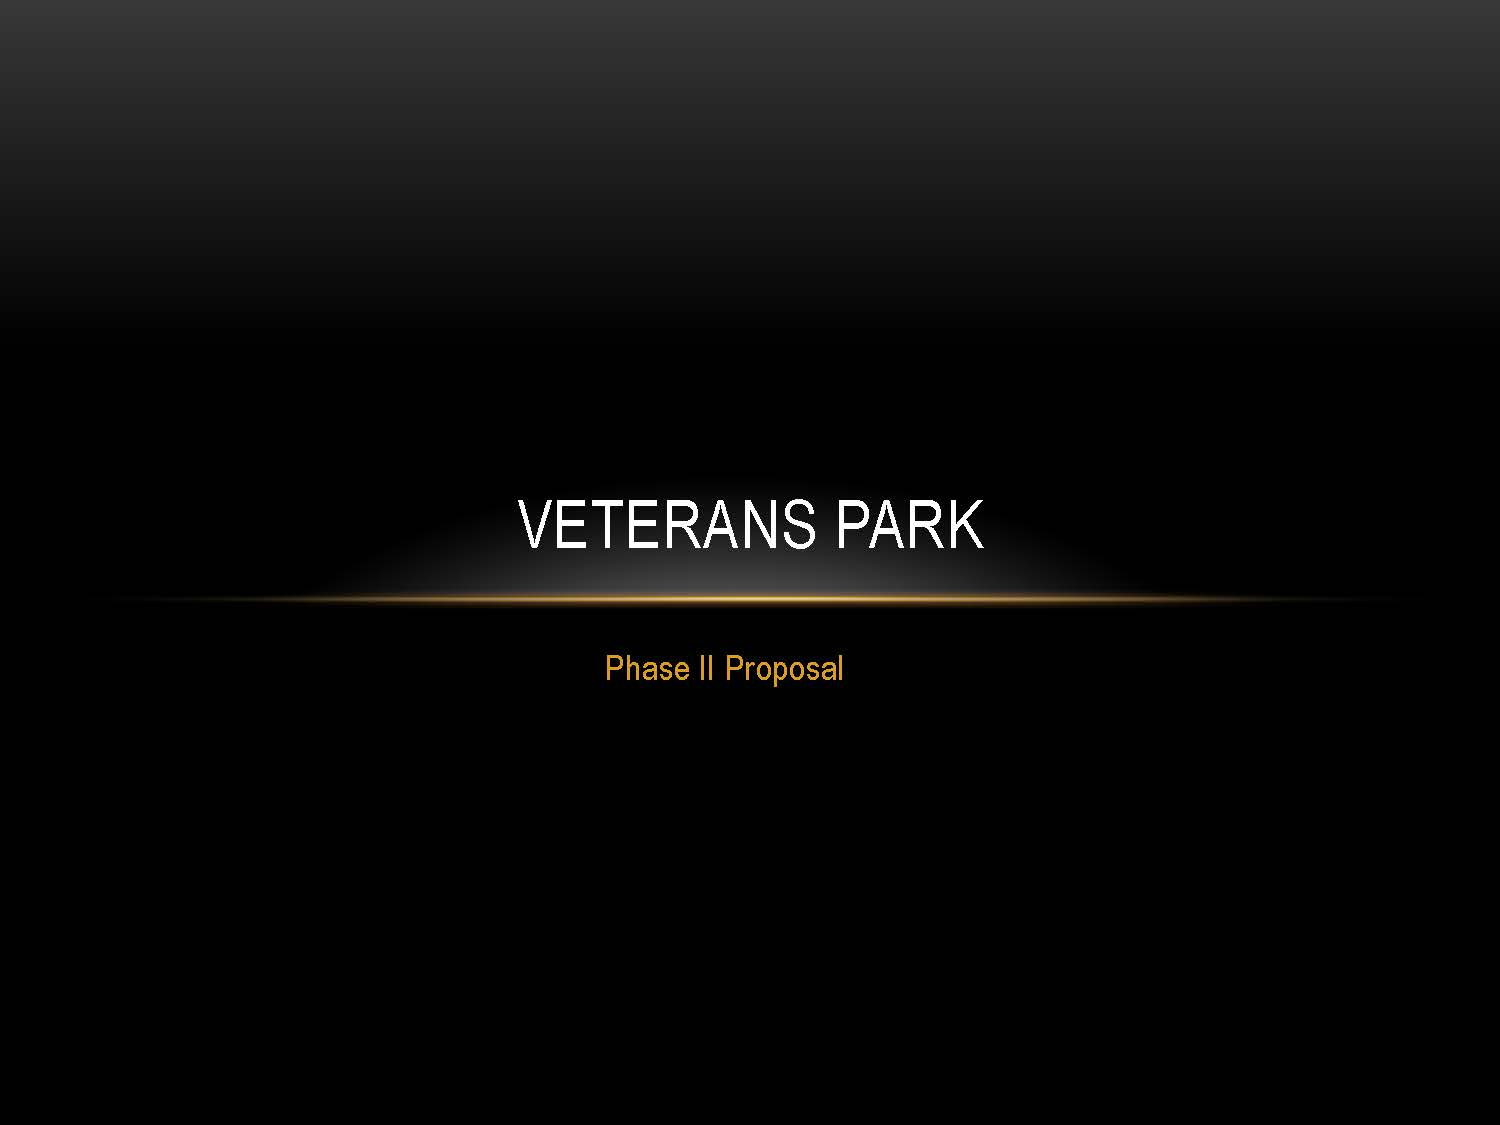 Veterans Park Phase II City Council Presentaton 05172017